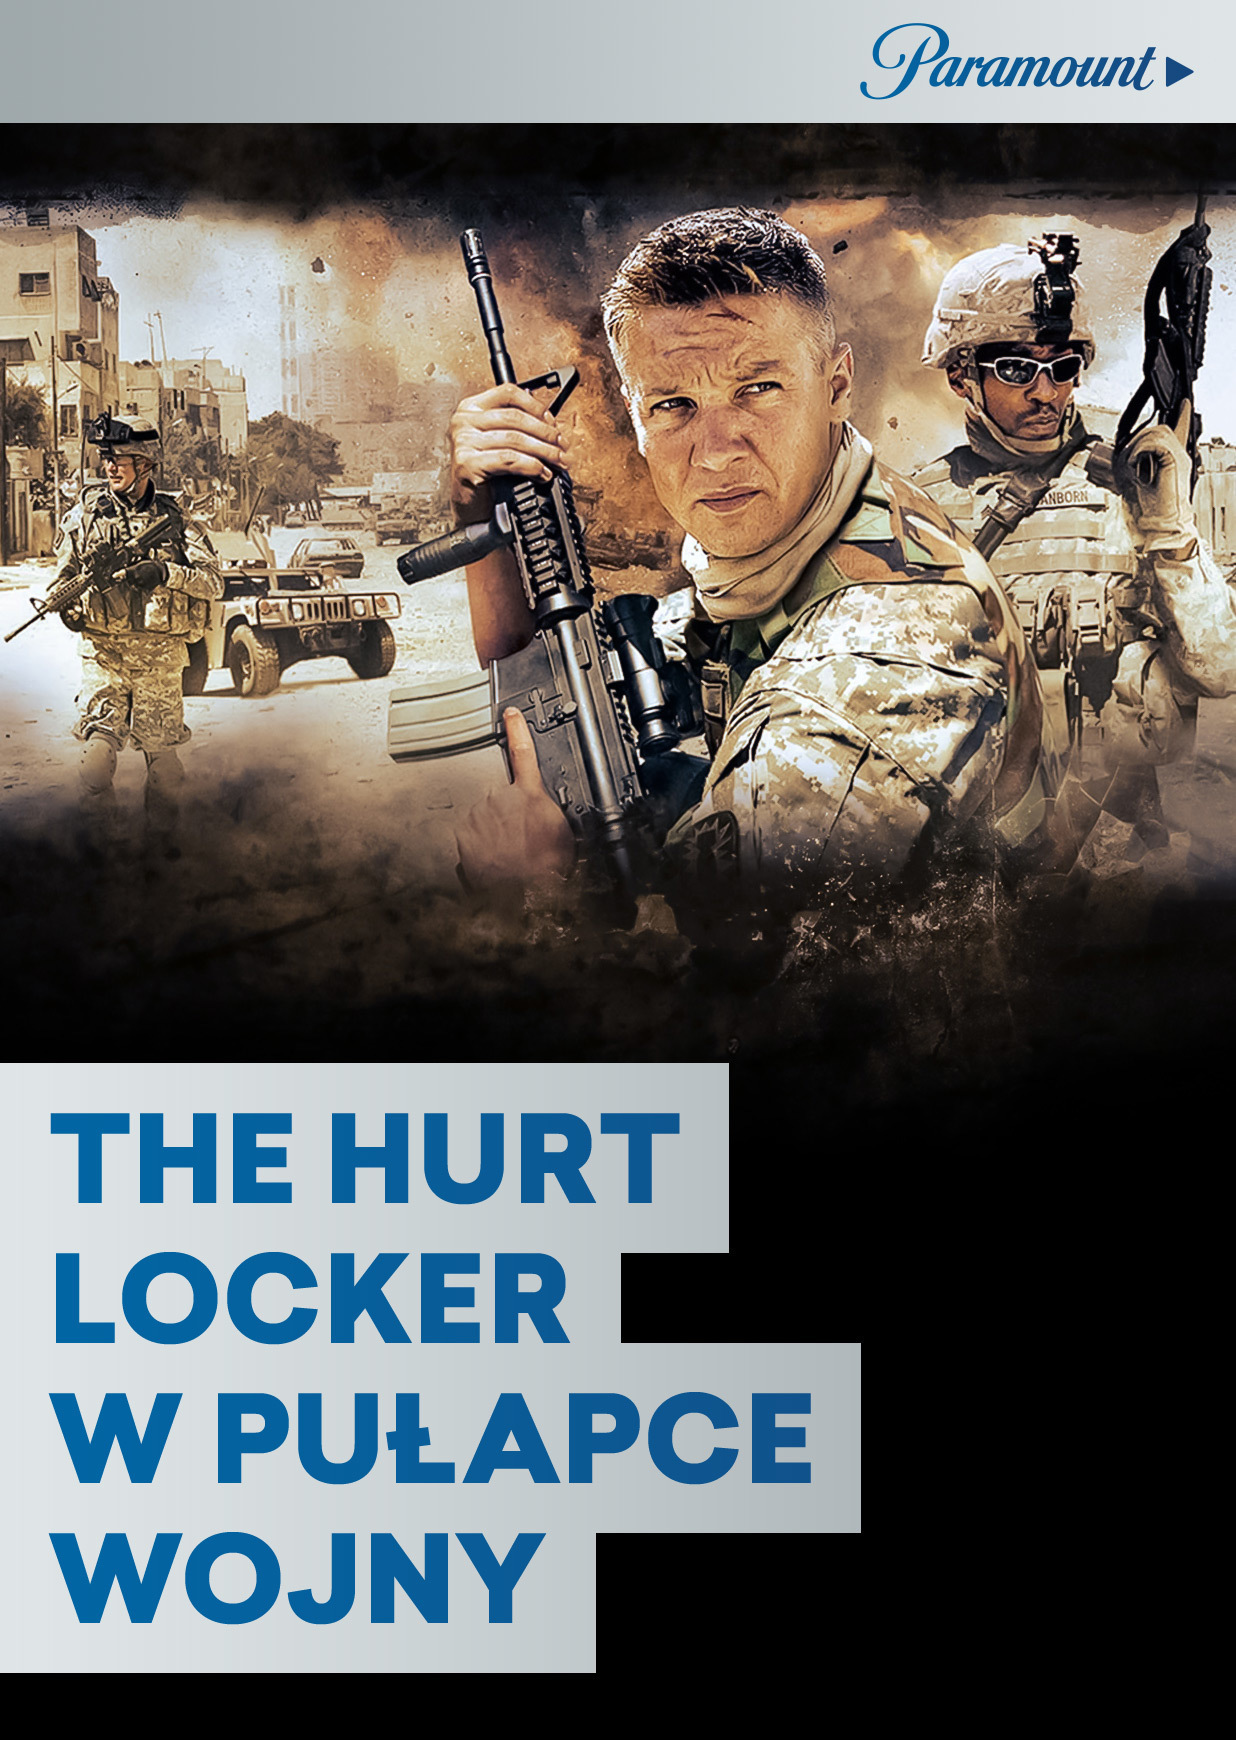 The Hurt Locker. W pułapce wojny